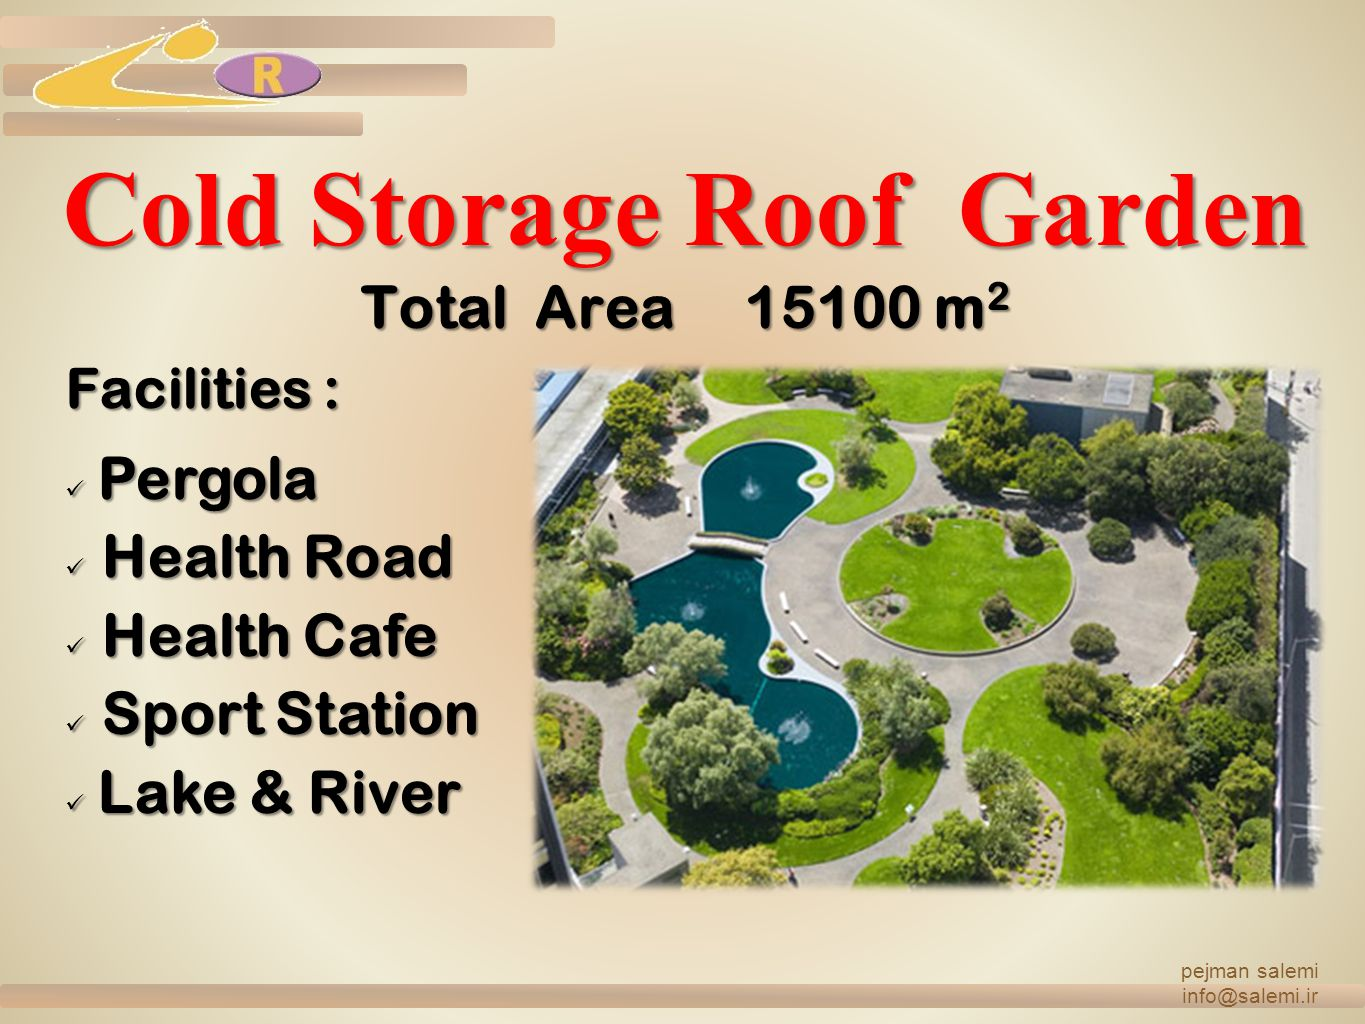 Cold Storage Roof Garden Total Area 15100 m2